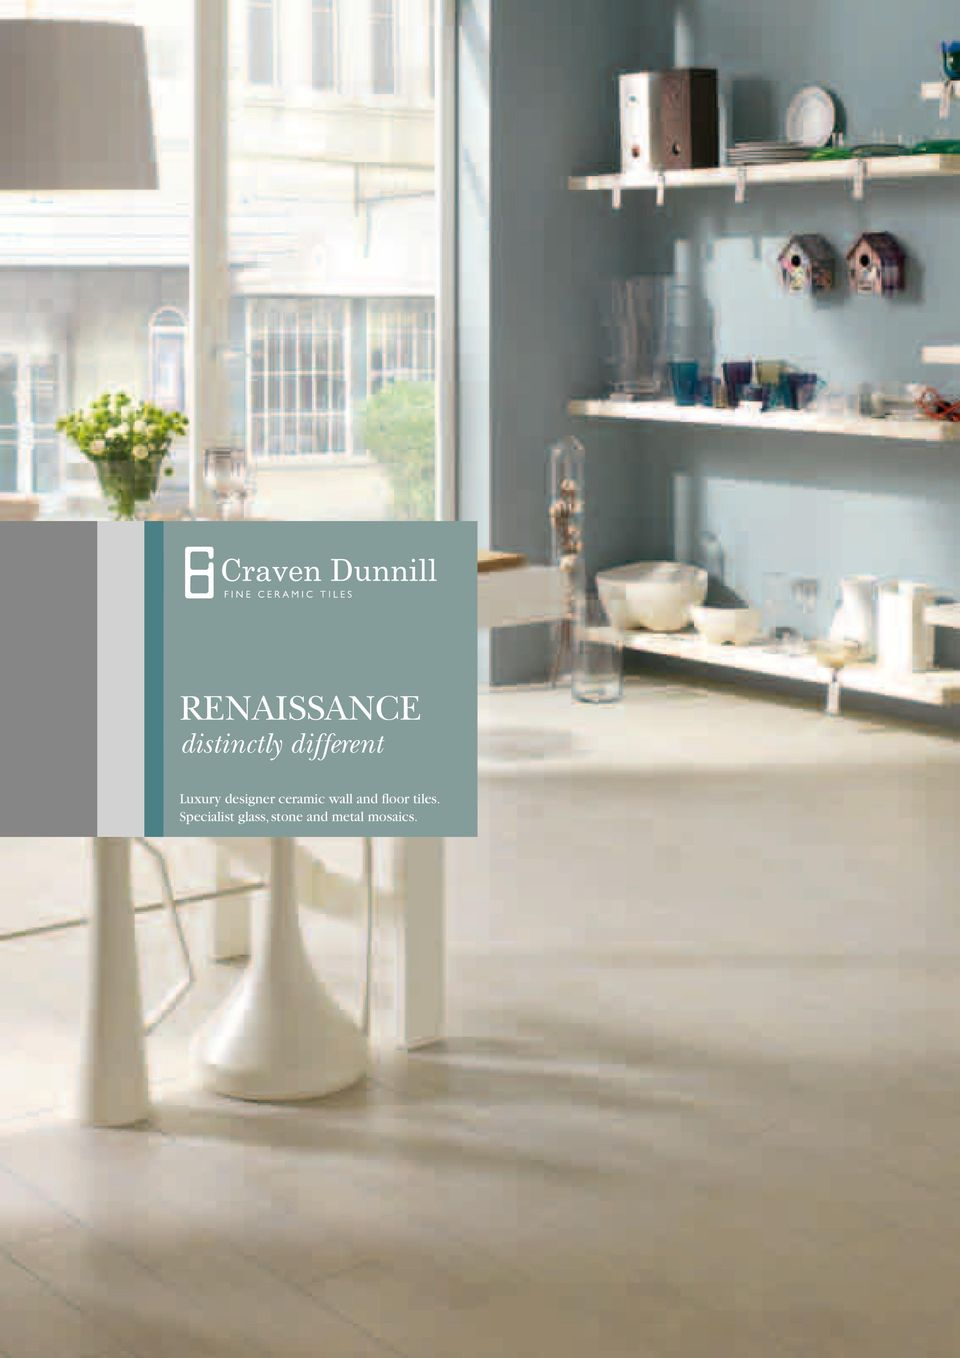 RENAISSANCE distinctly different. Luxury designer ceramic wall and ...